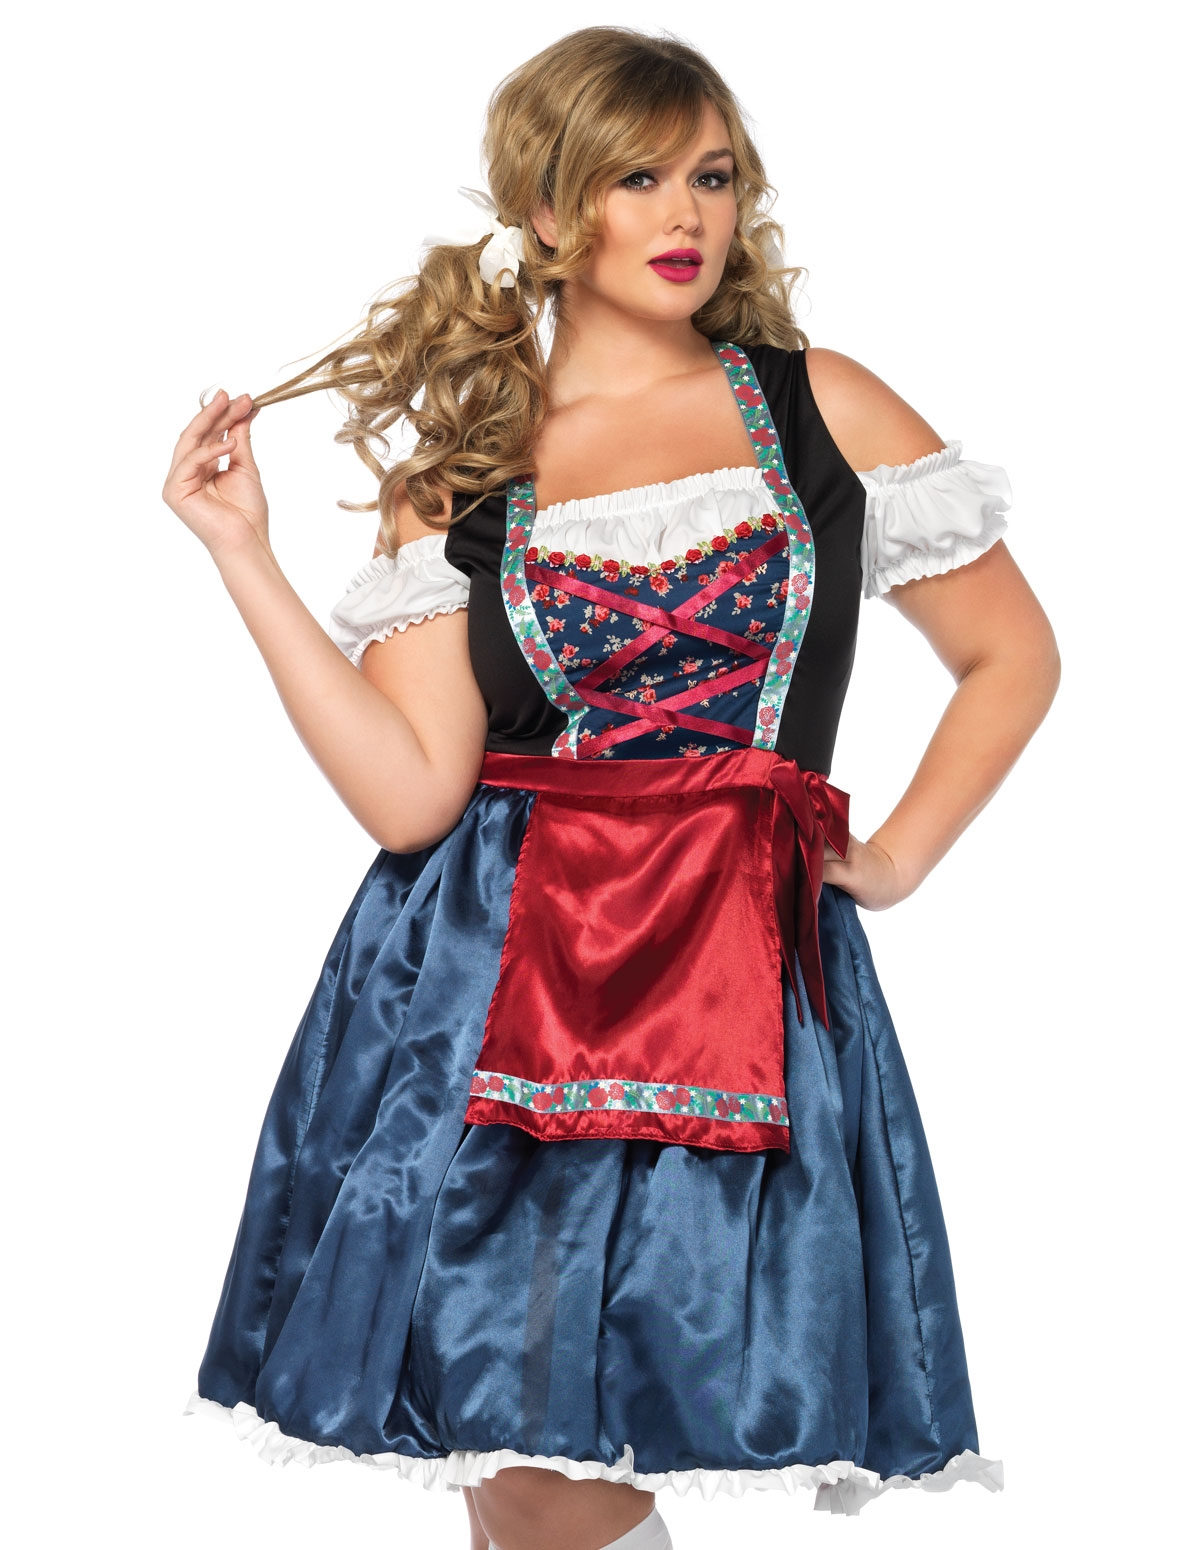 Beerfest Beauty Plus Size Costume